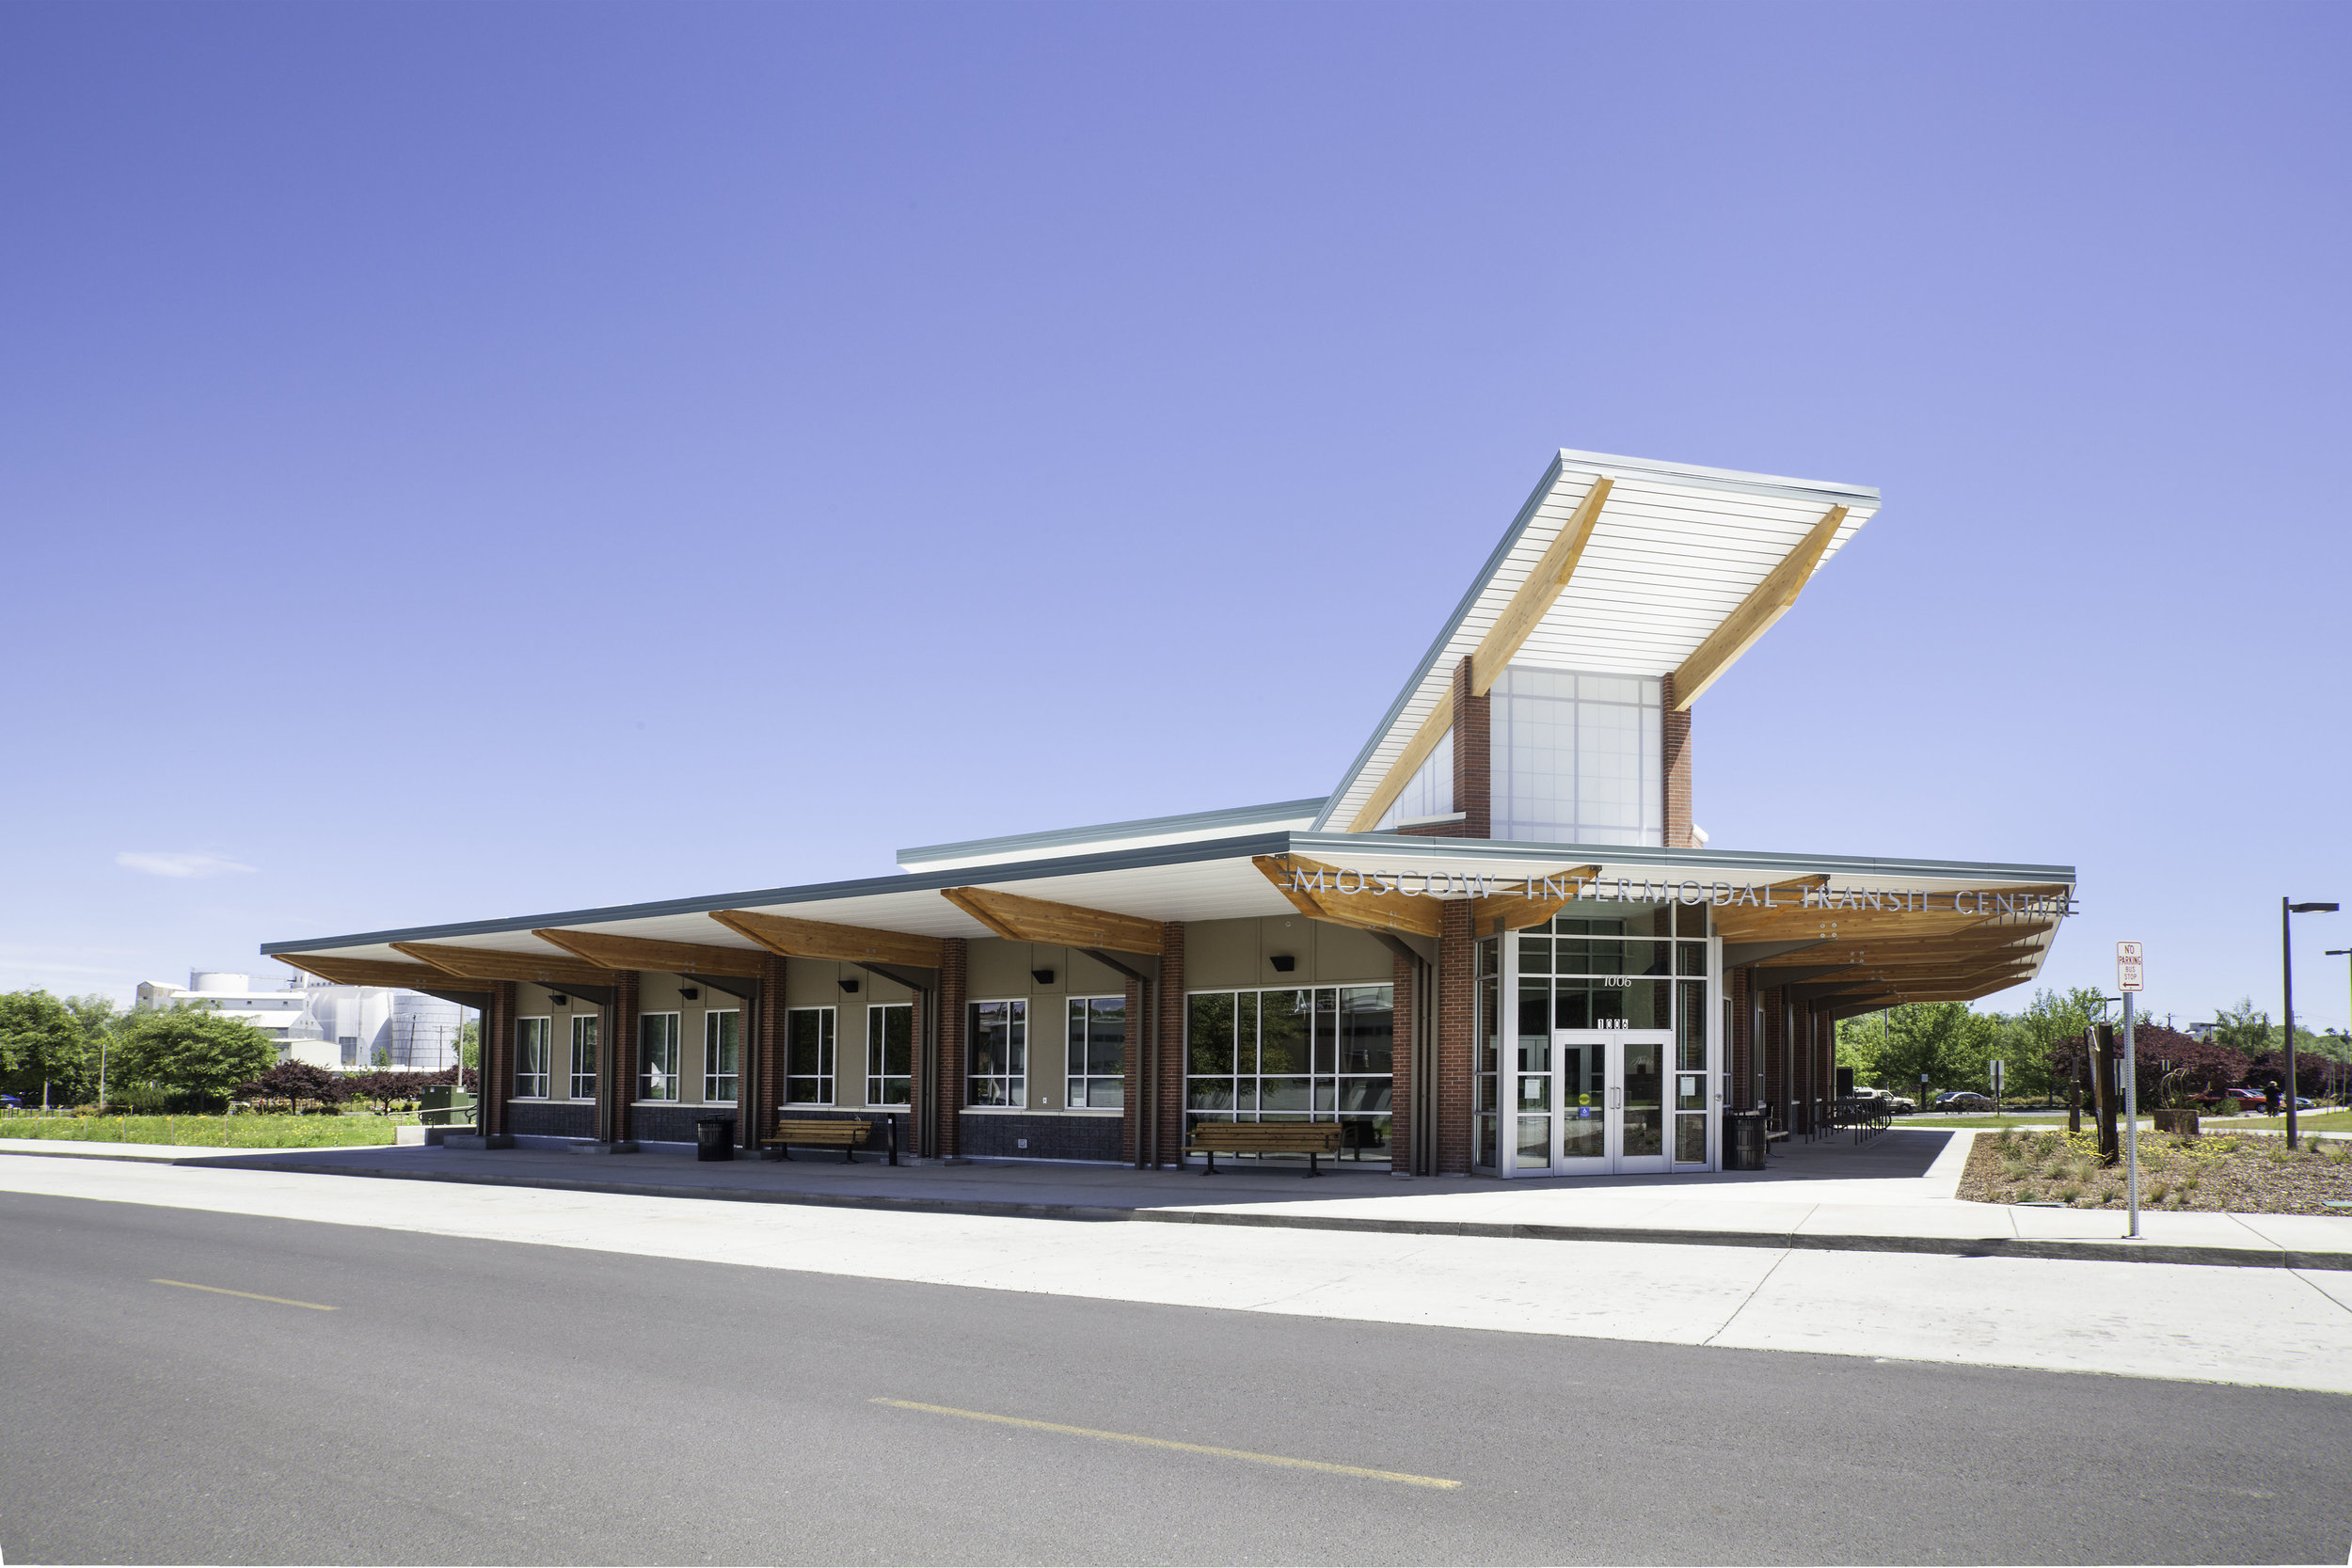 Owner: City of Moscow Location: Moscow, ID   The Moscow Intermodal Transit Center houses multiple local and regional transit tenants and provides a convenient central operating location. The design focuses public space toward the street with the main service lobby adjacent and visually connected to the loading platforms and public plaza space. The standing seam metal roof, brick masonry, and exposed heavy timber wood materials are durable and fit with existing community context while glass, metal, and translucent panels set the building apart.